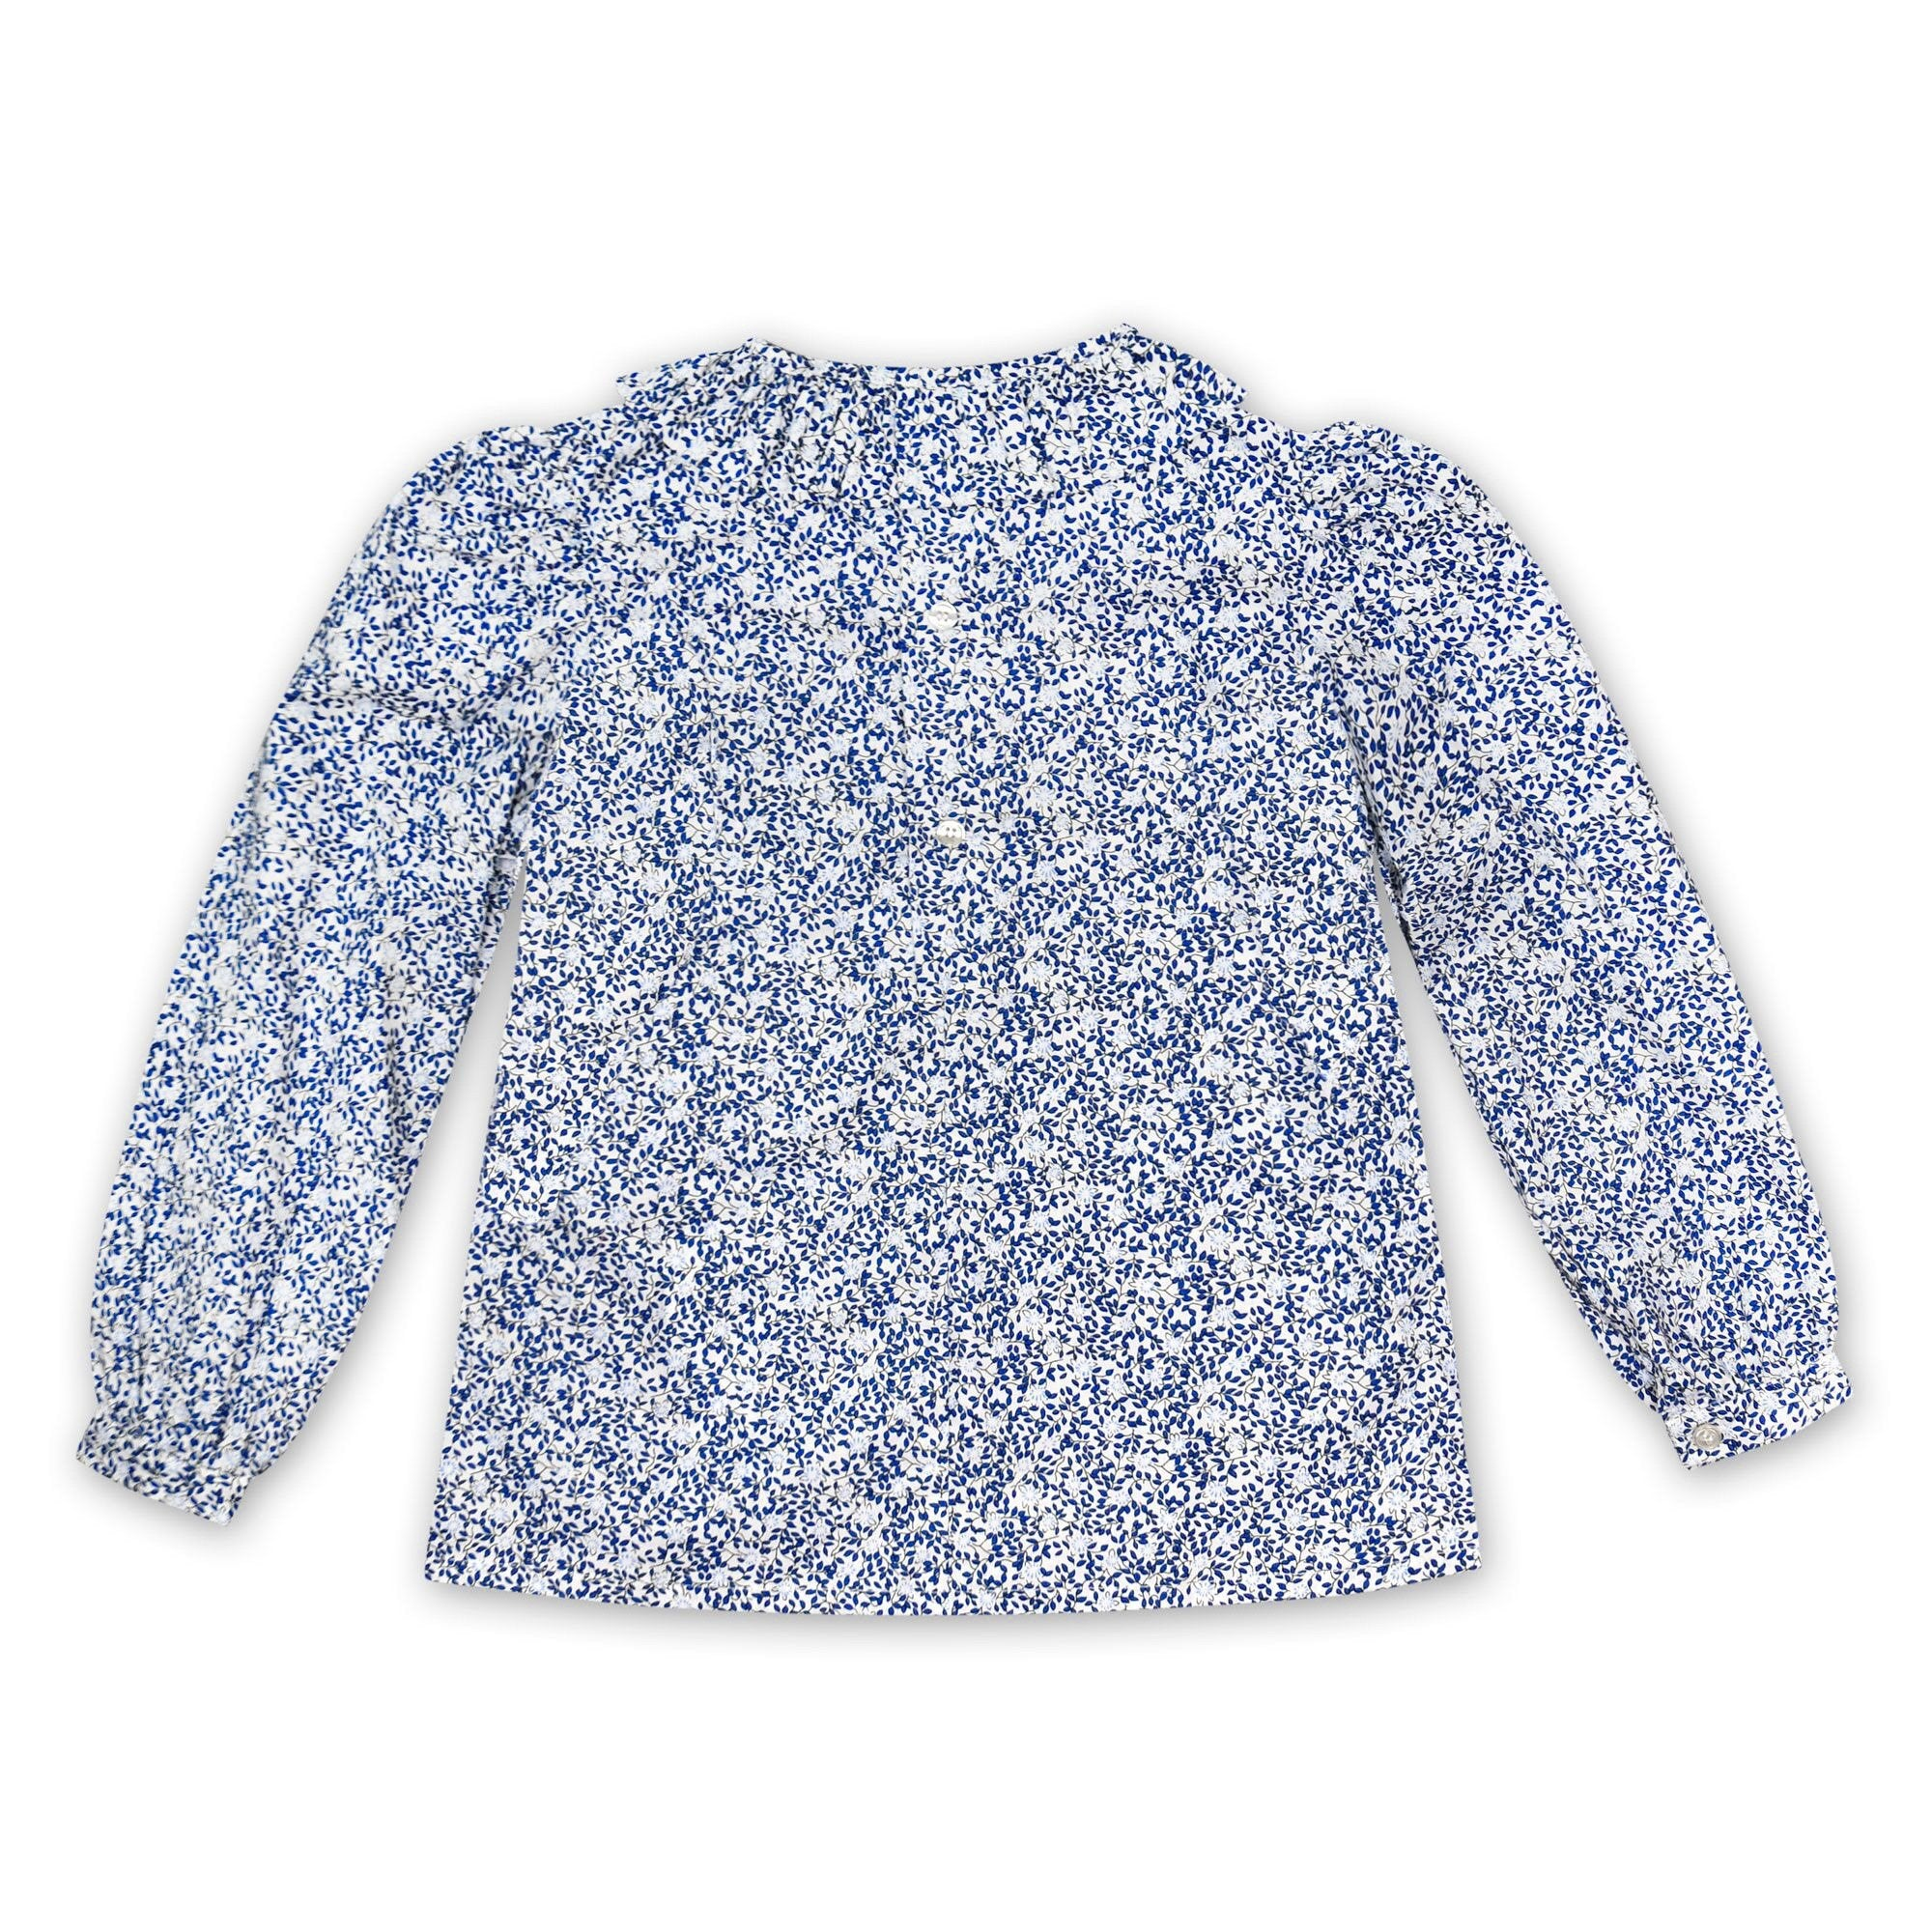 FRILL COLLARED SHIRT IN NAVY AND PALE BLUE FLORAL PRINT